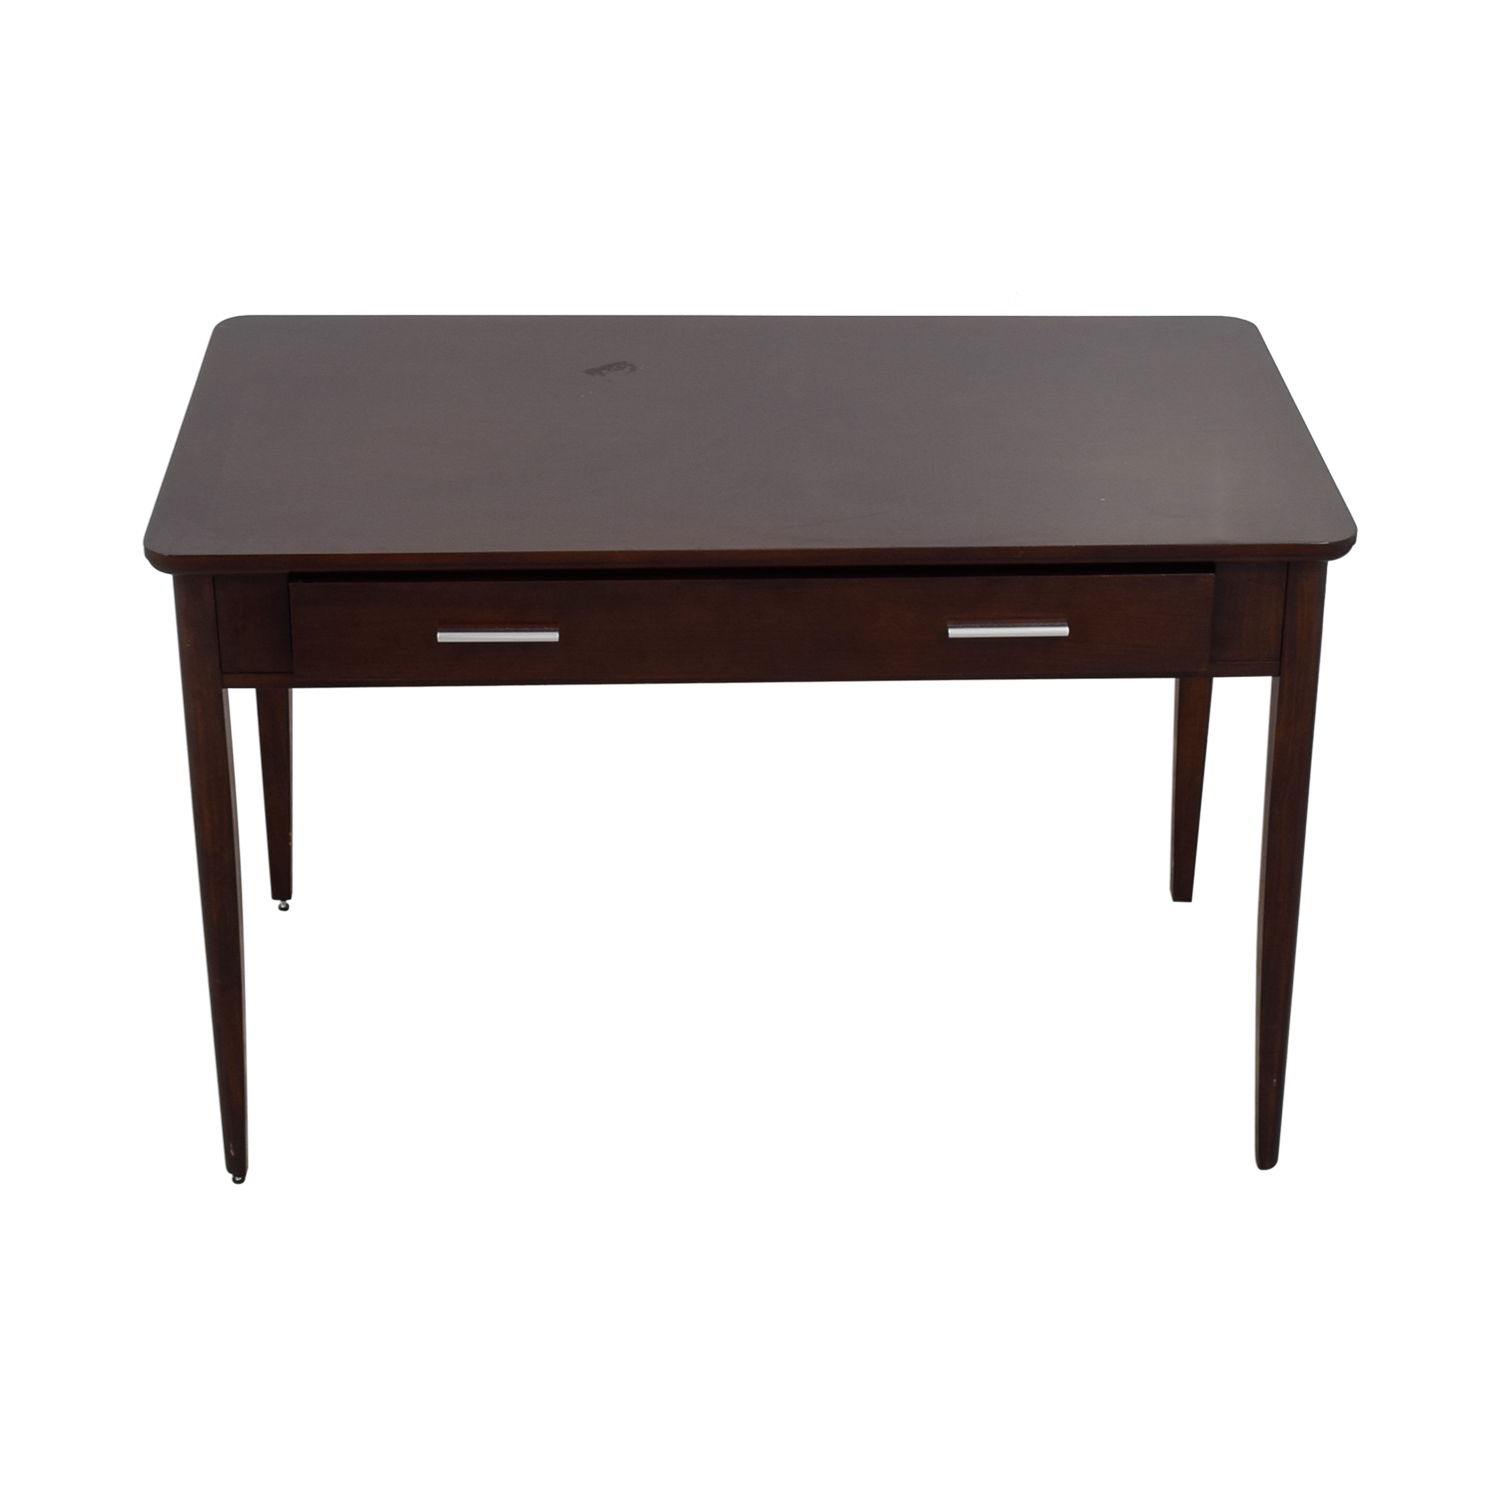 Hooker Furniture Hooker Furniture Single Drawer Wood Desk price